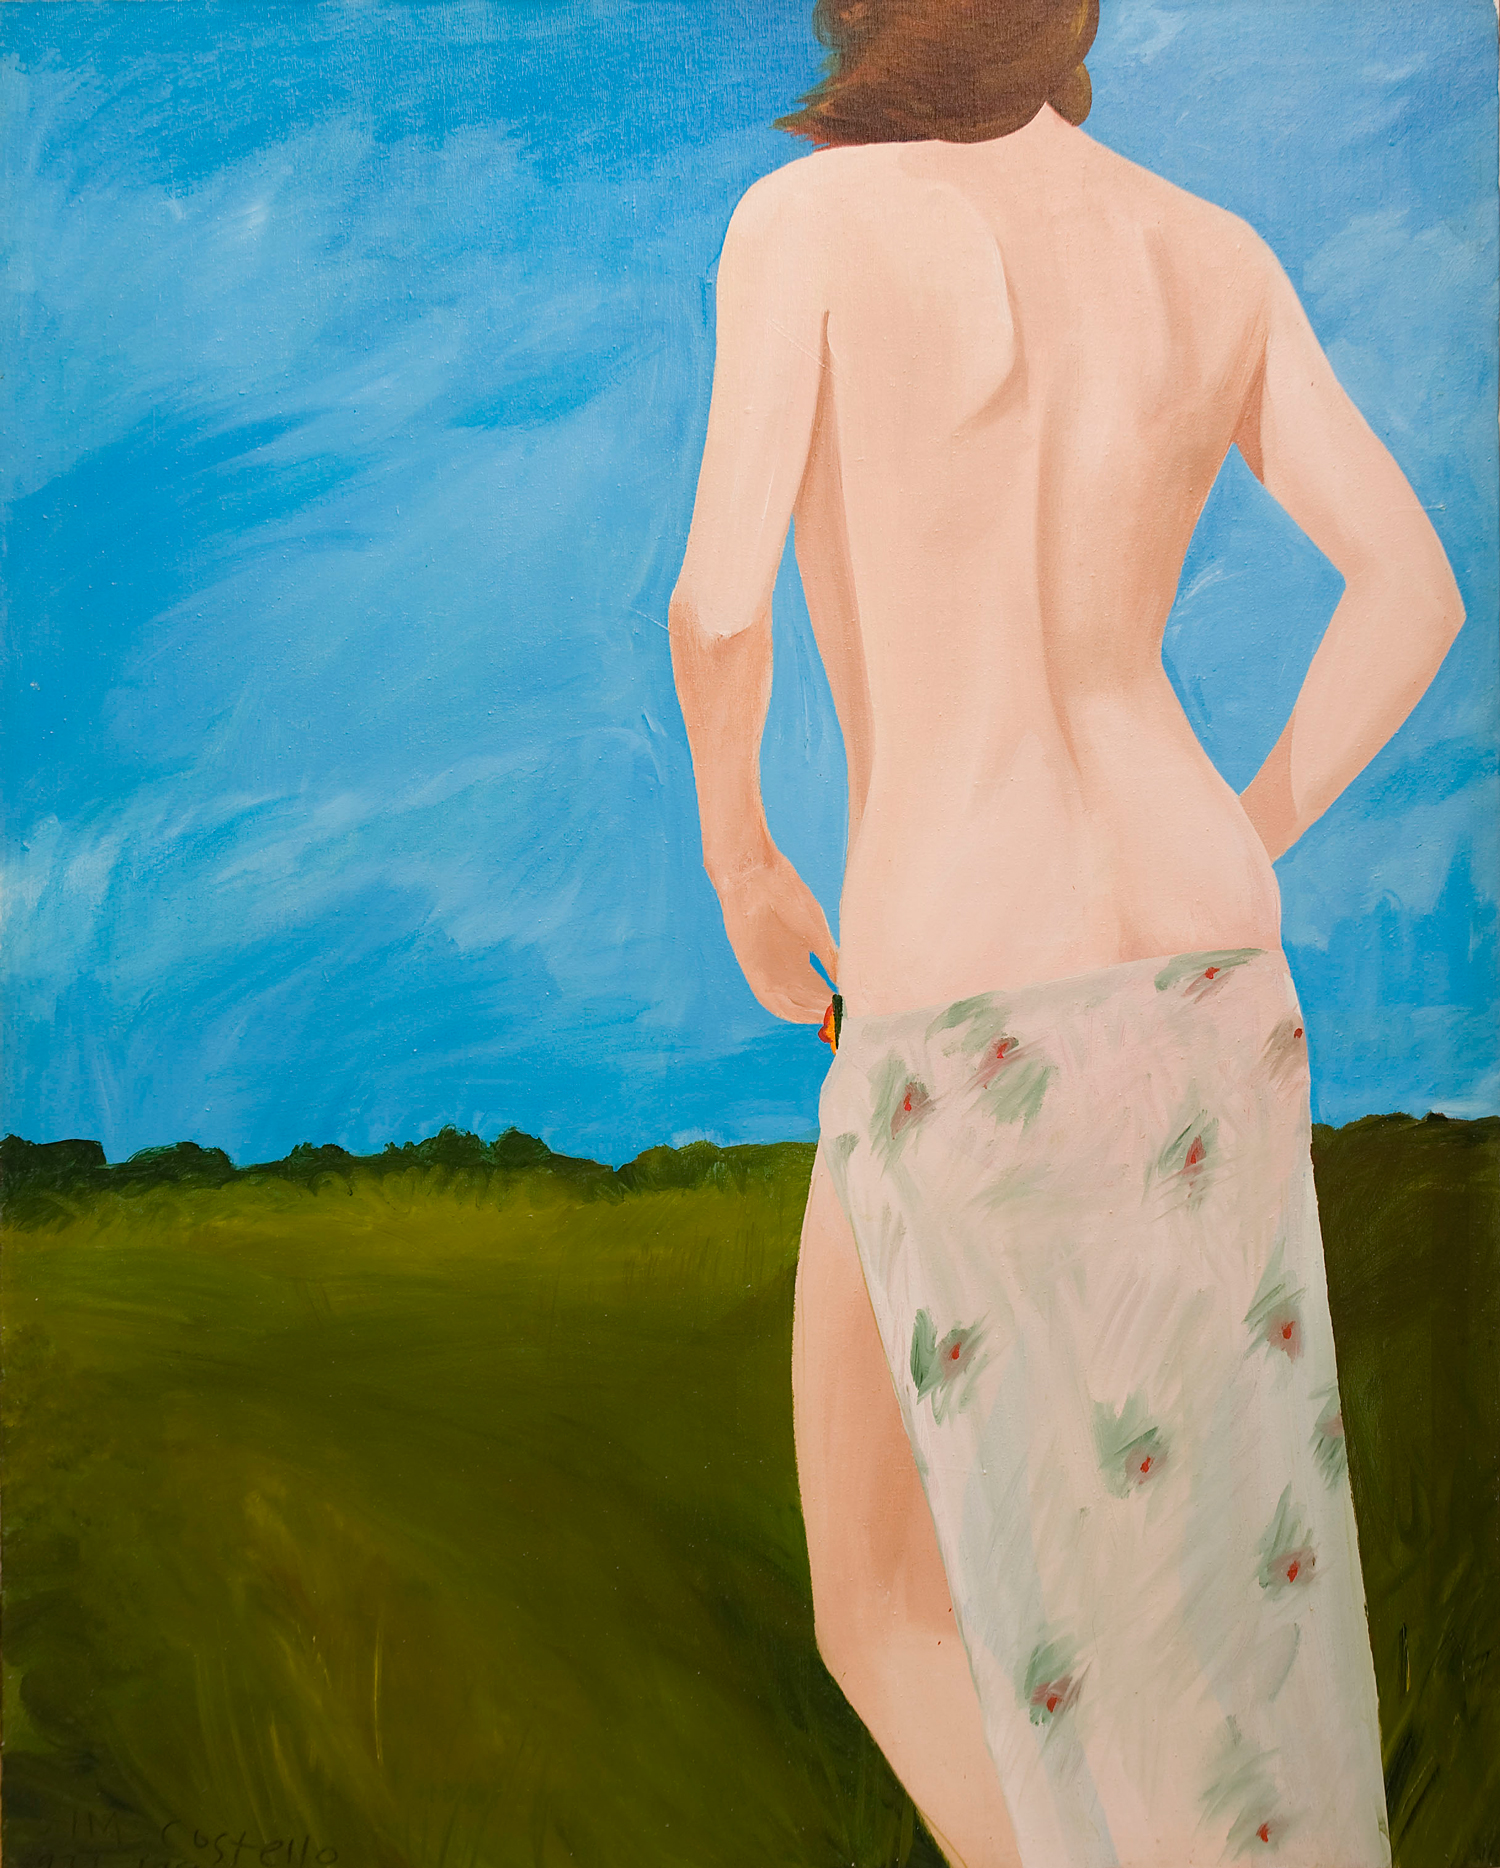 painting_1971-95_untitled_figure-in-sarong_lg.jpg